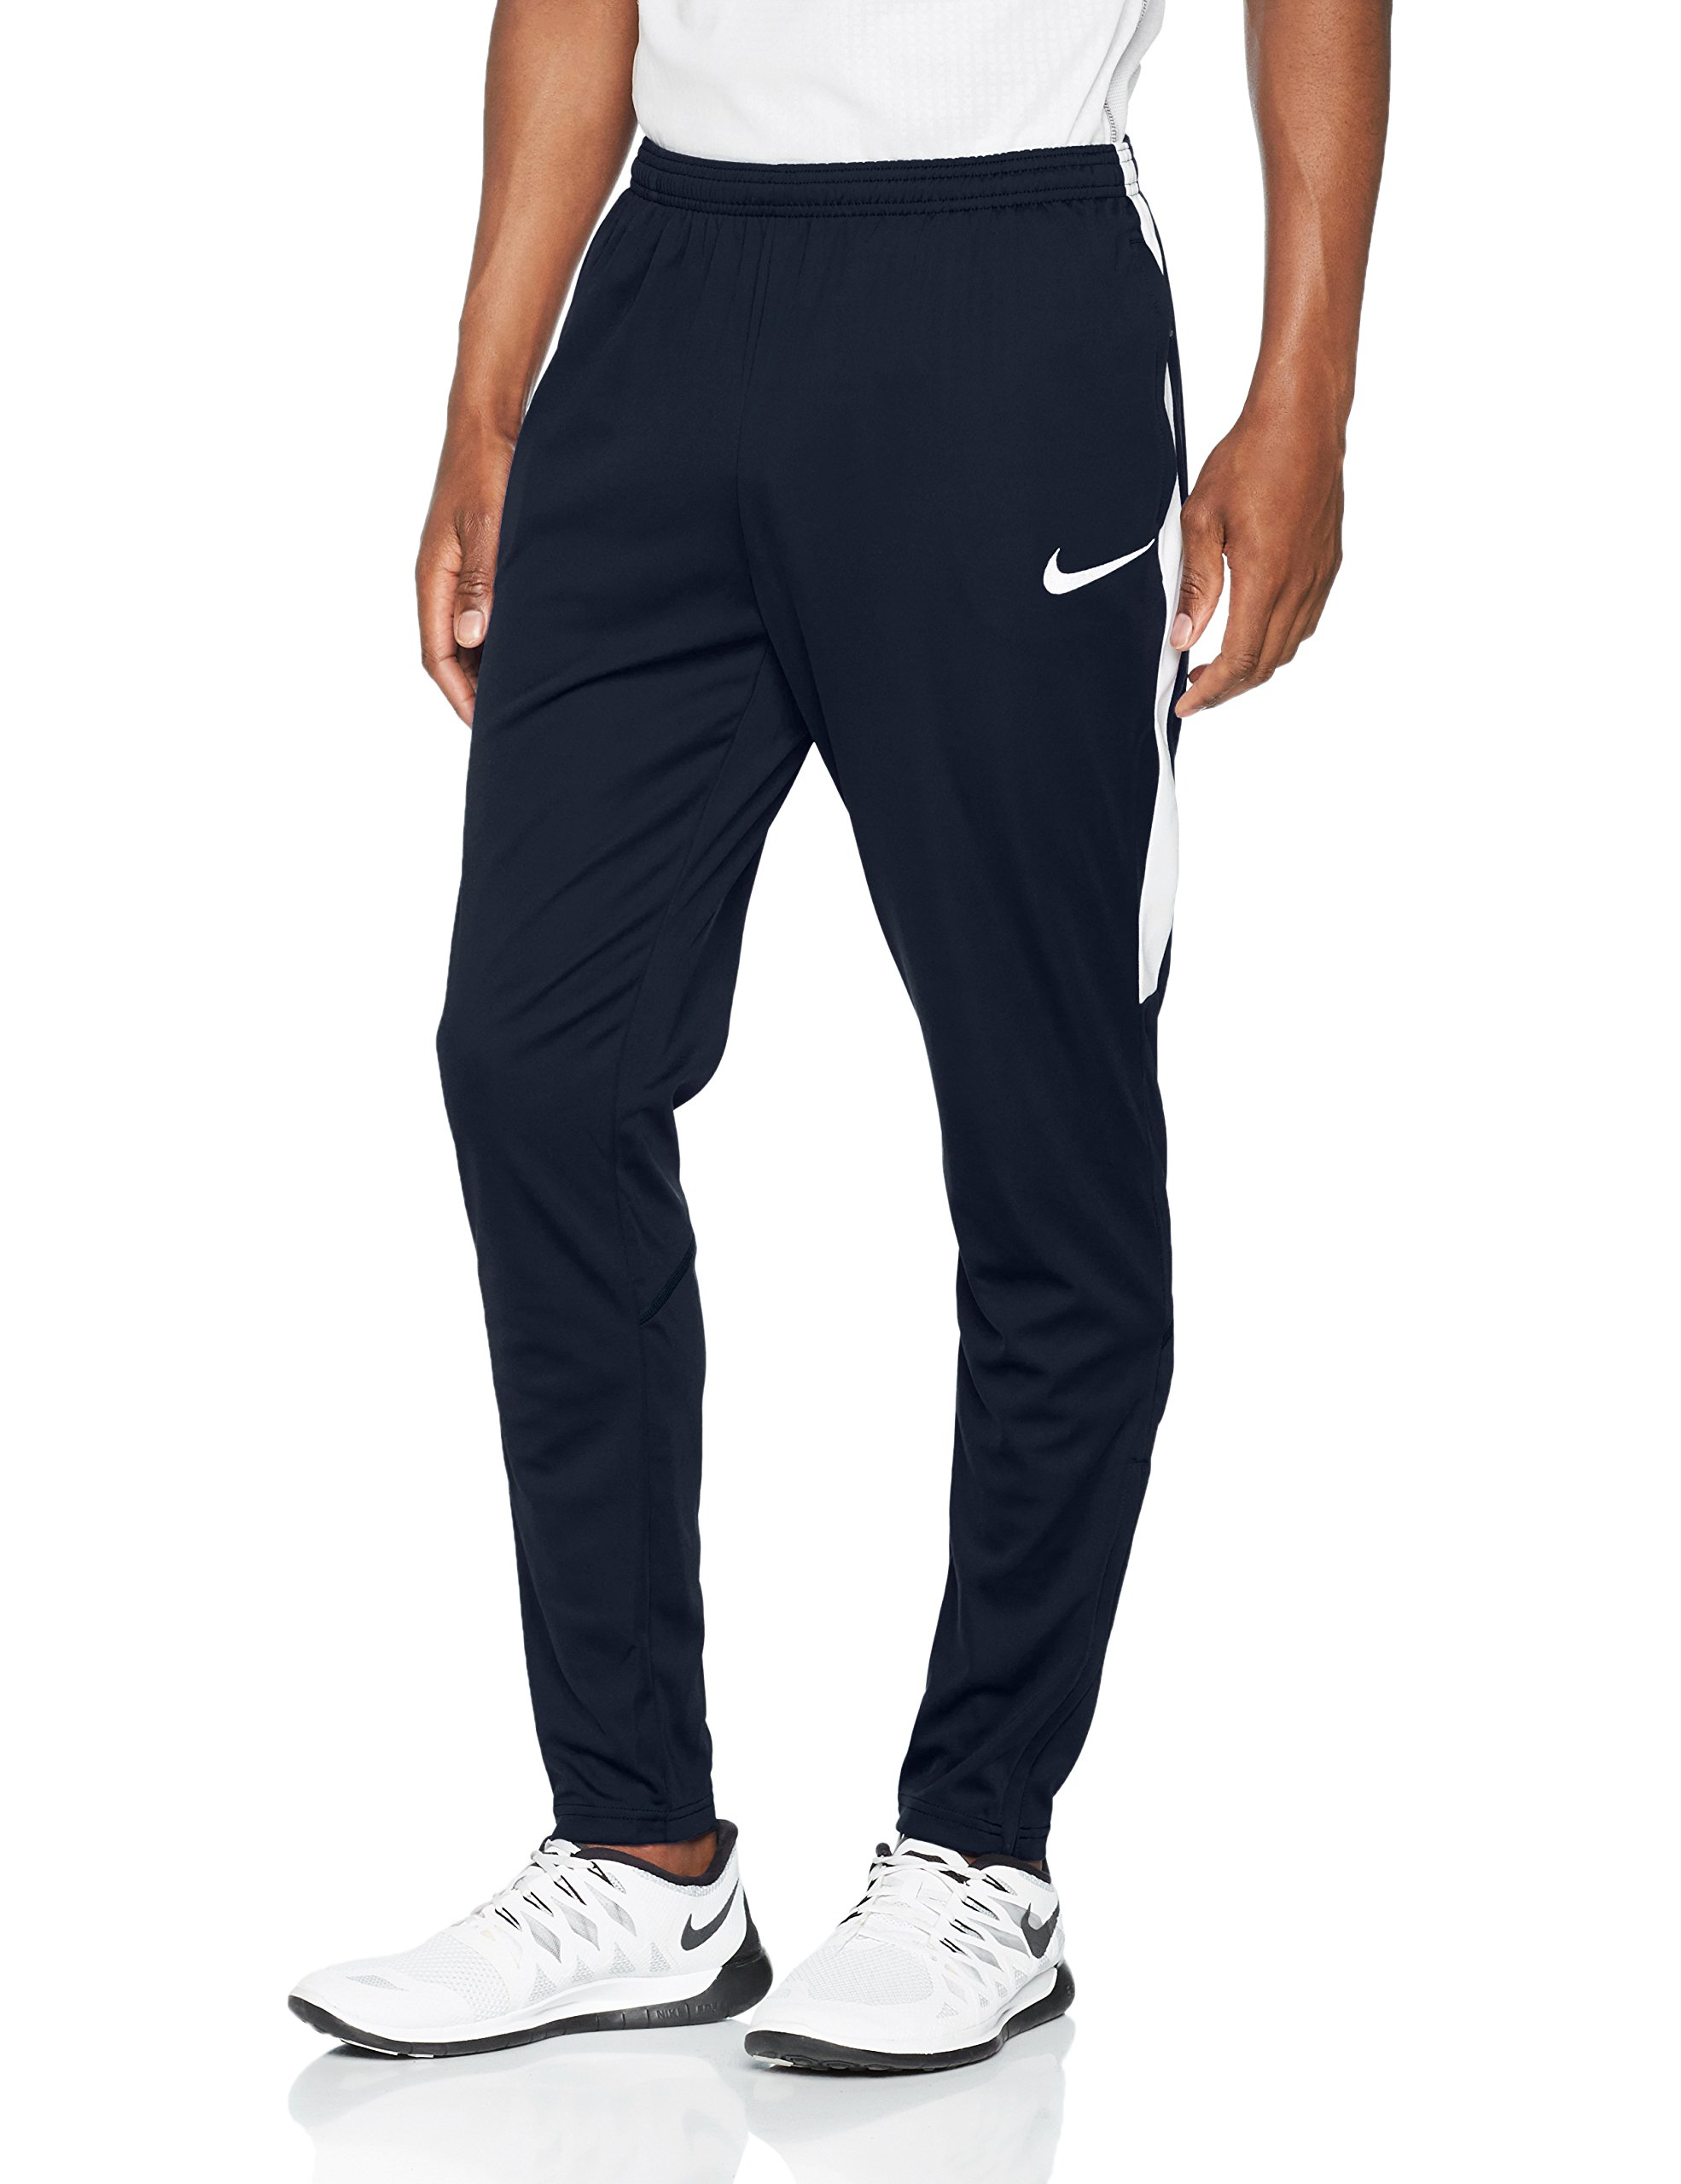 afff9ea136903 Details about Men's Dry Academy Football Pant